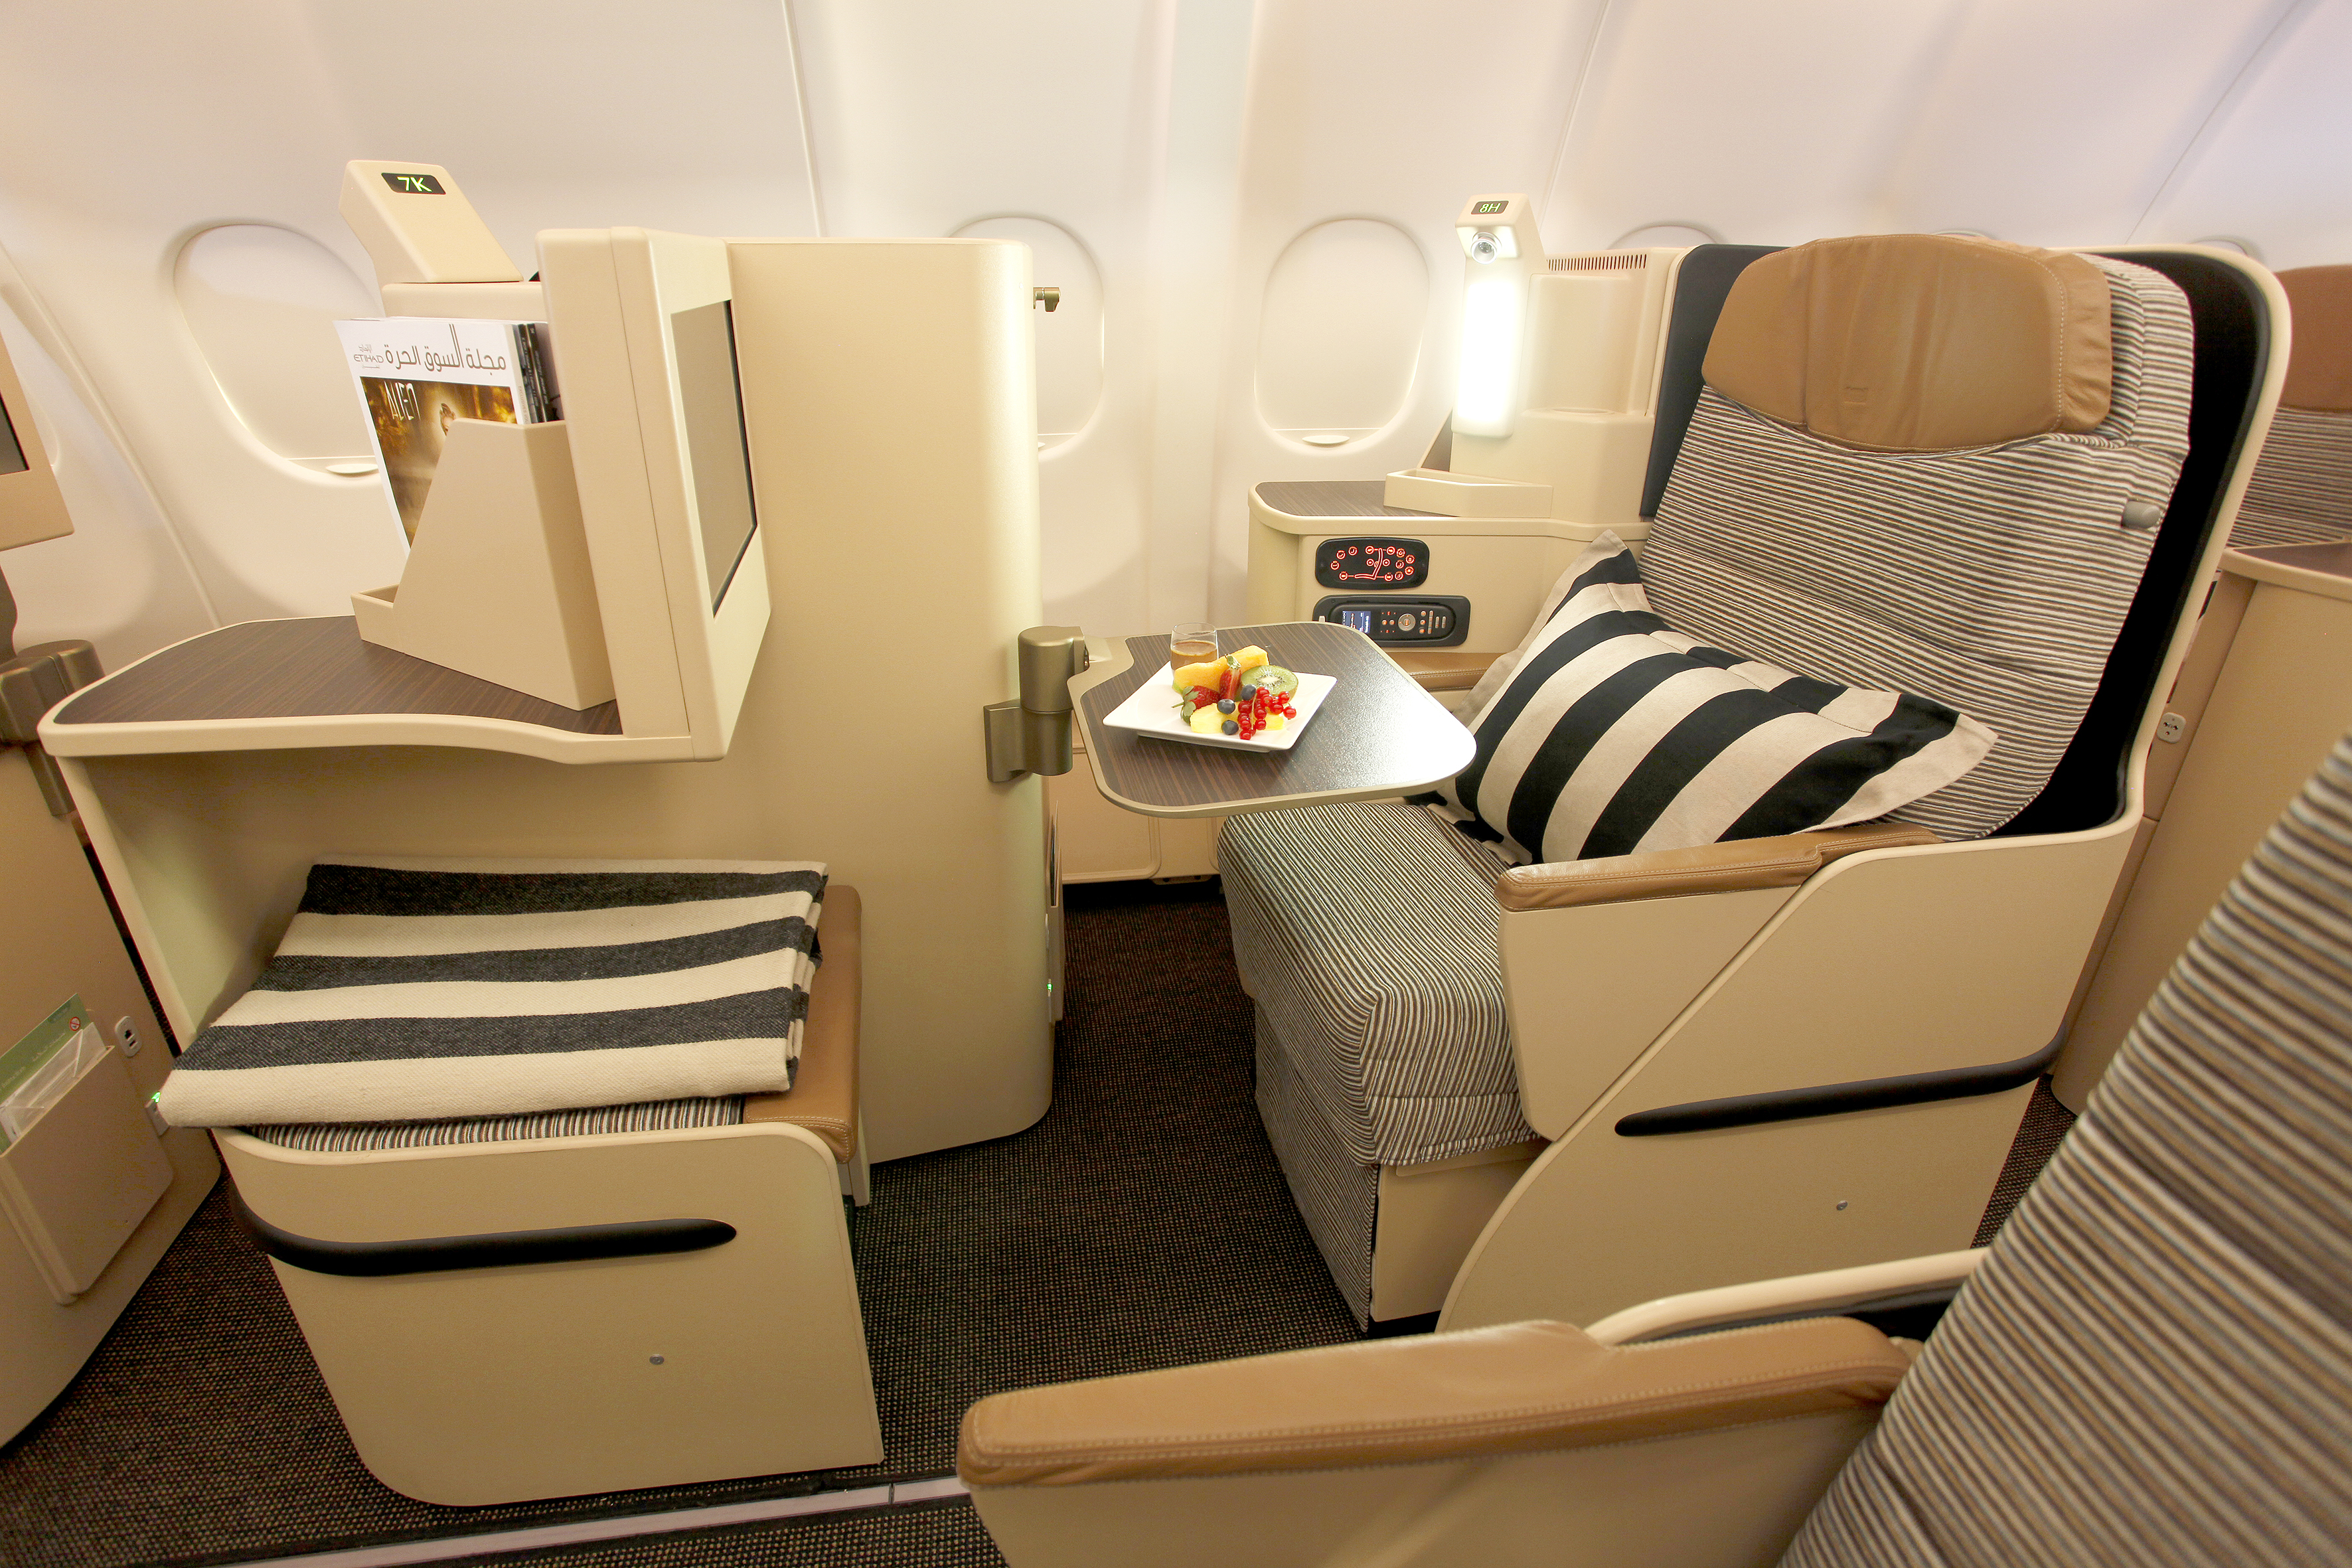 Space is a precious commodity in the air and Etihads Pearl Business Class offers plenty of this with its roomy seats.